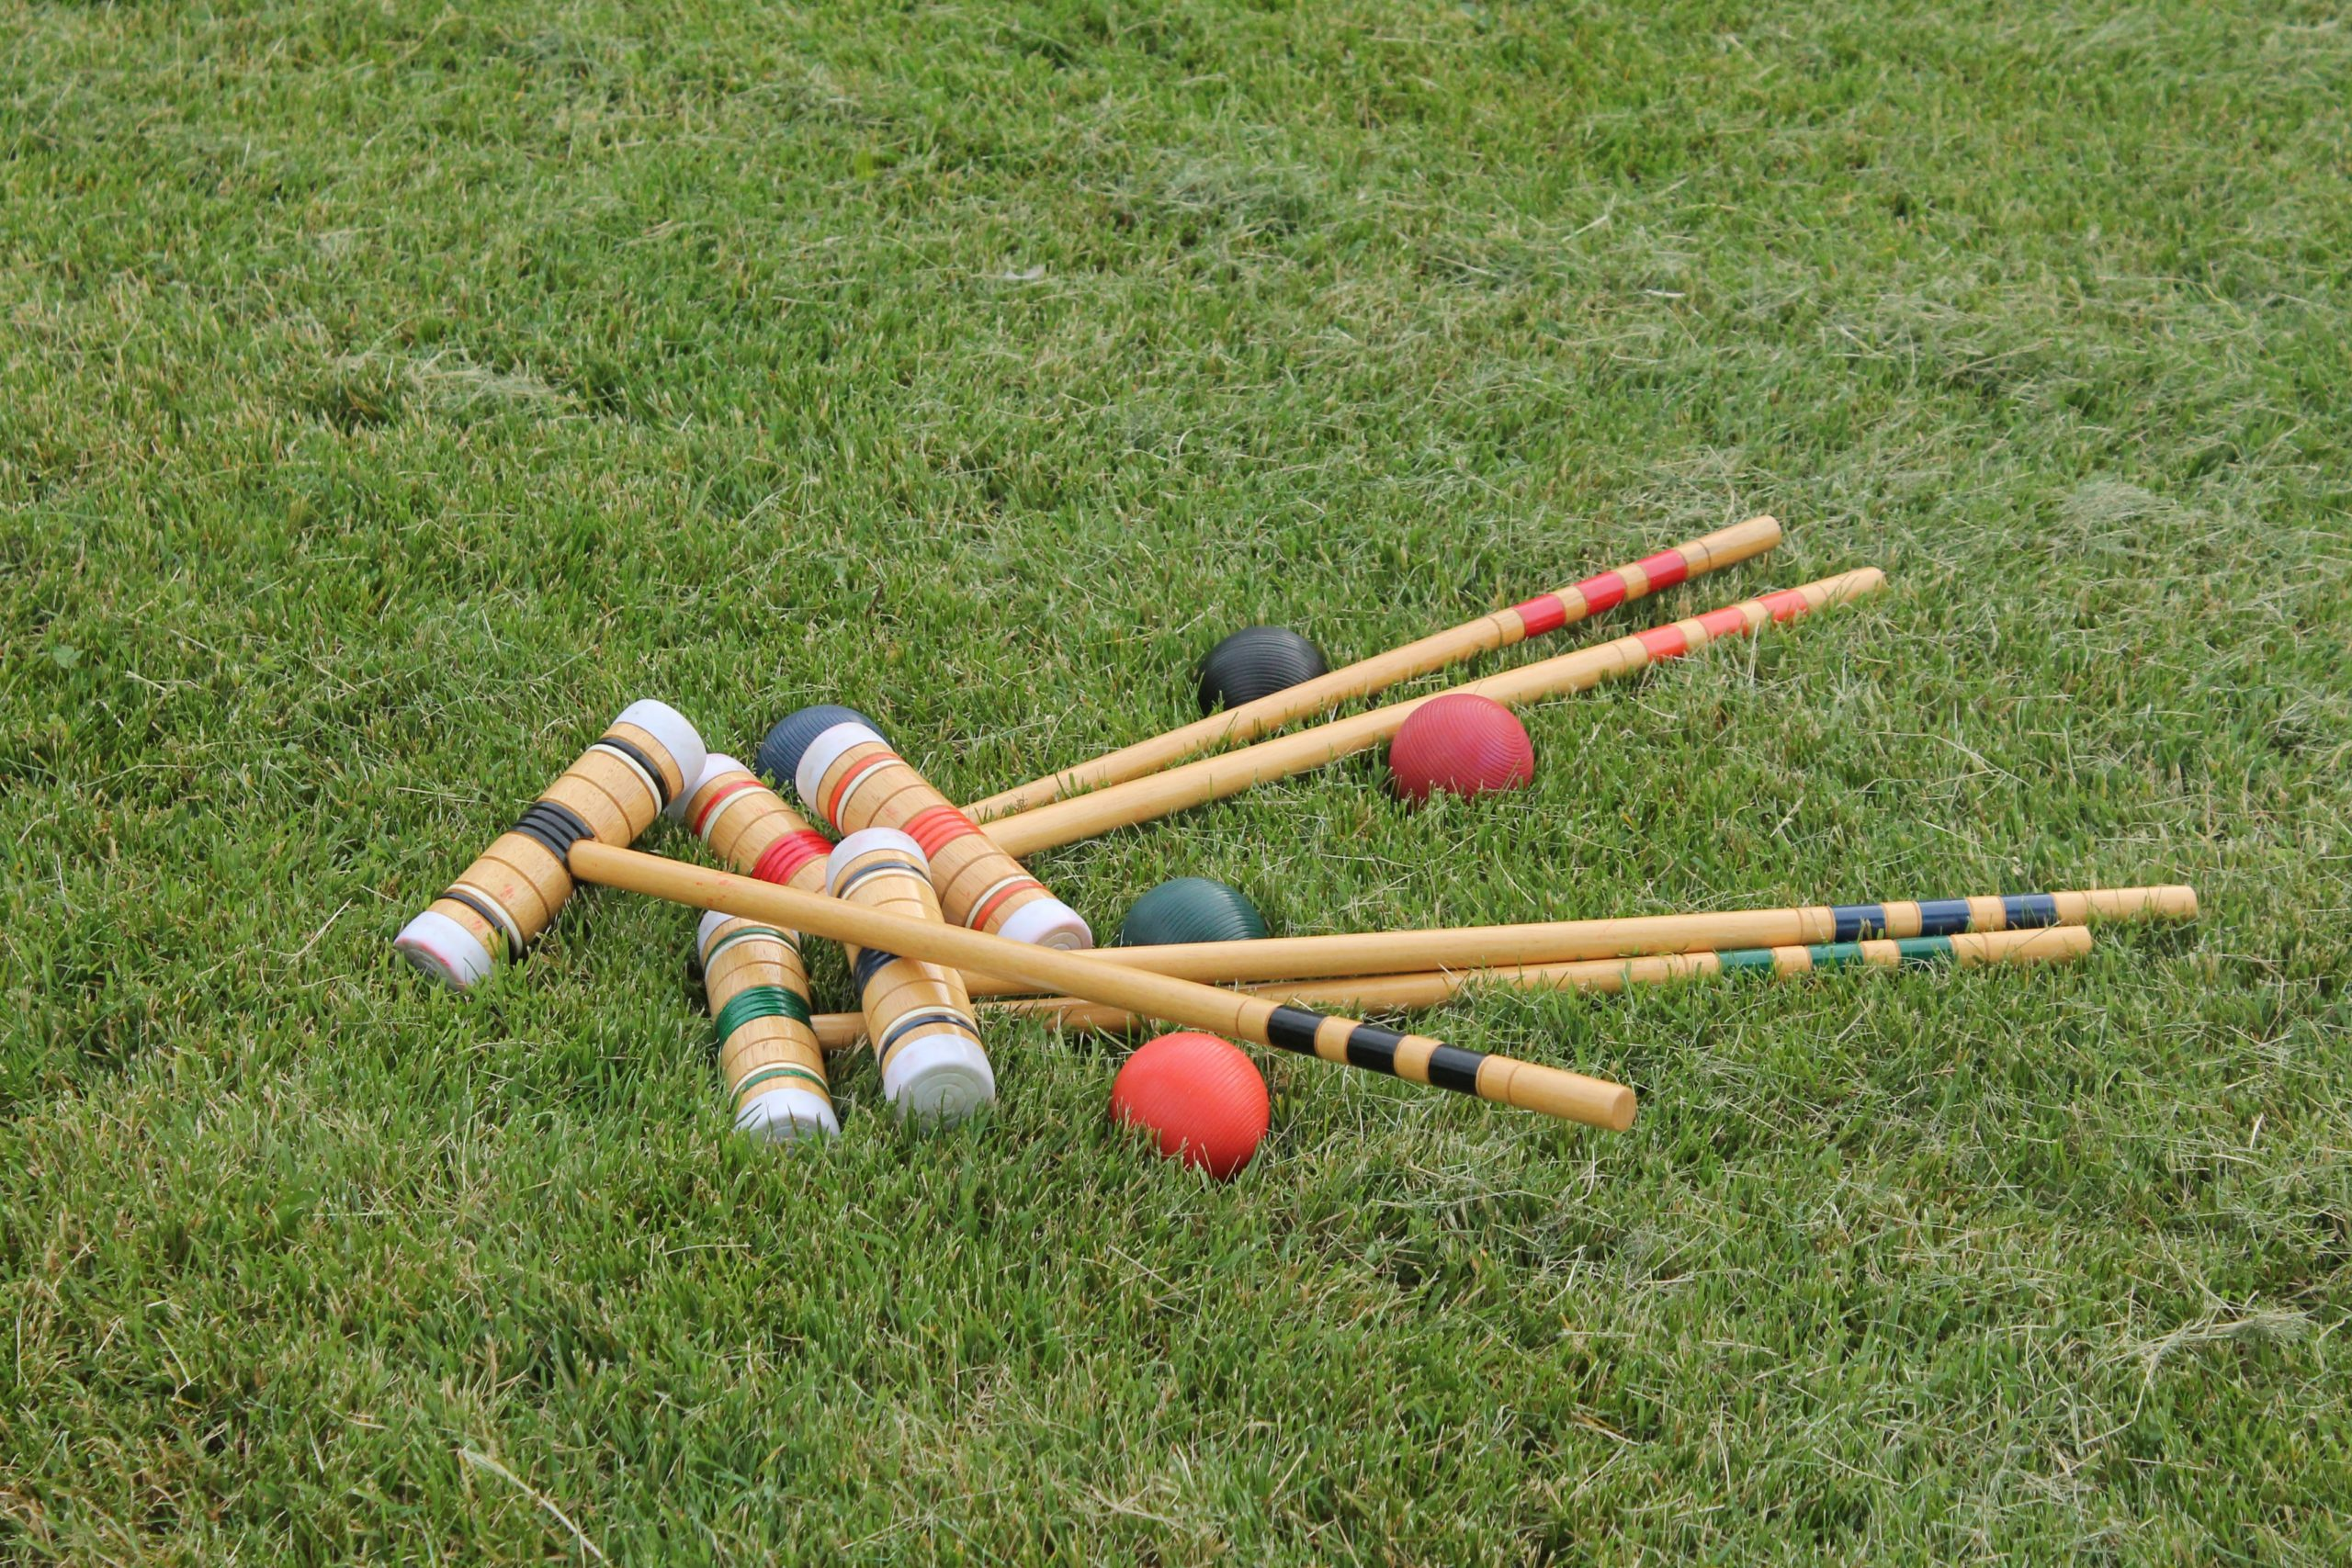 Croquet mallets and balls lying on the grass